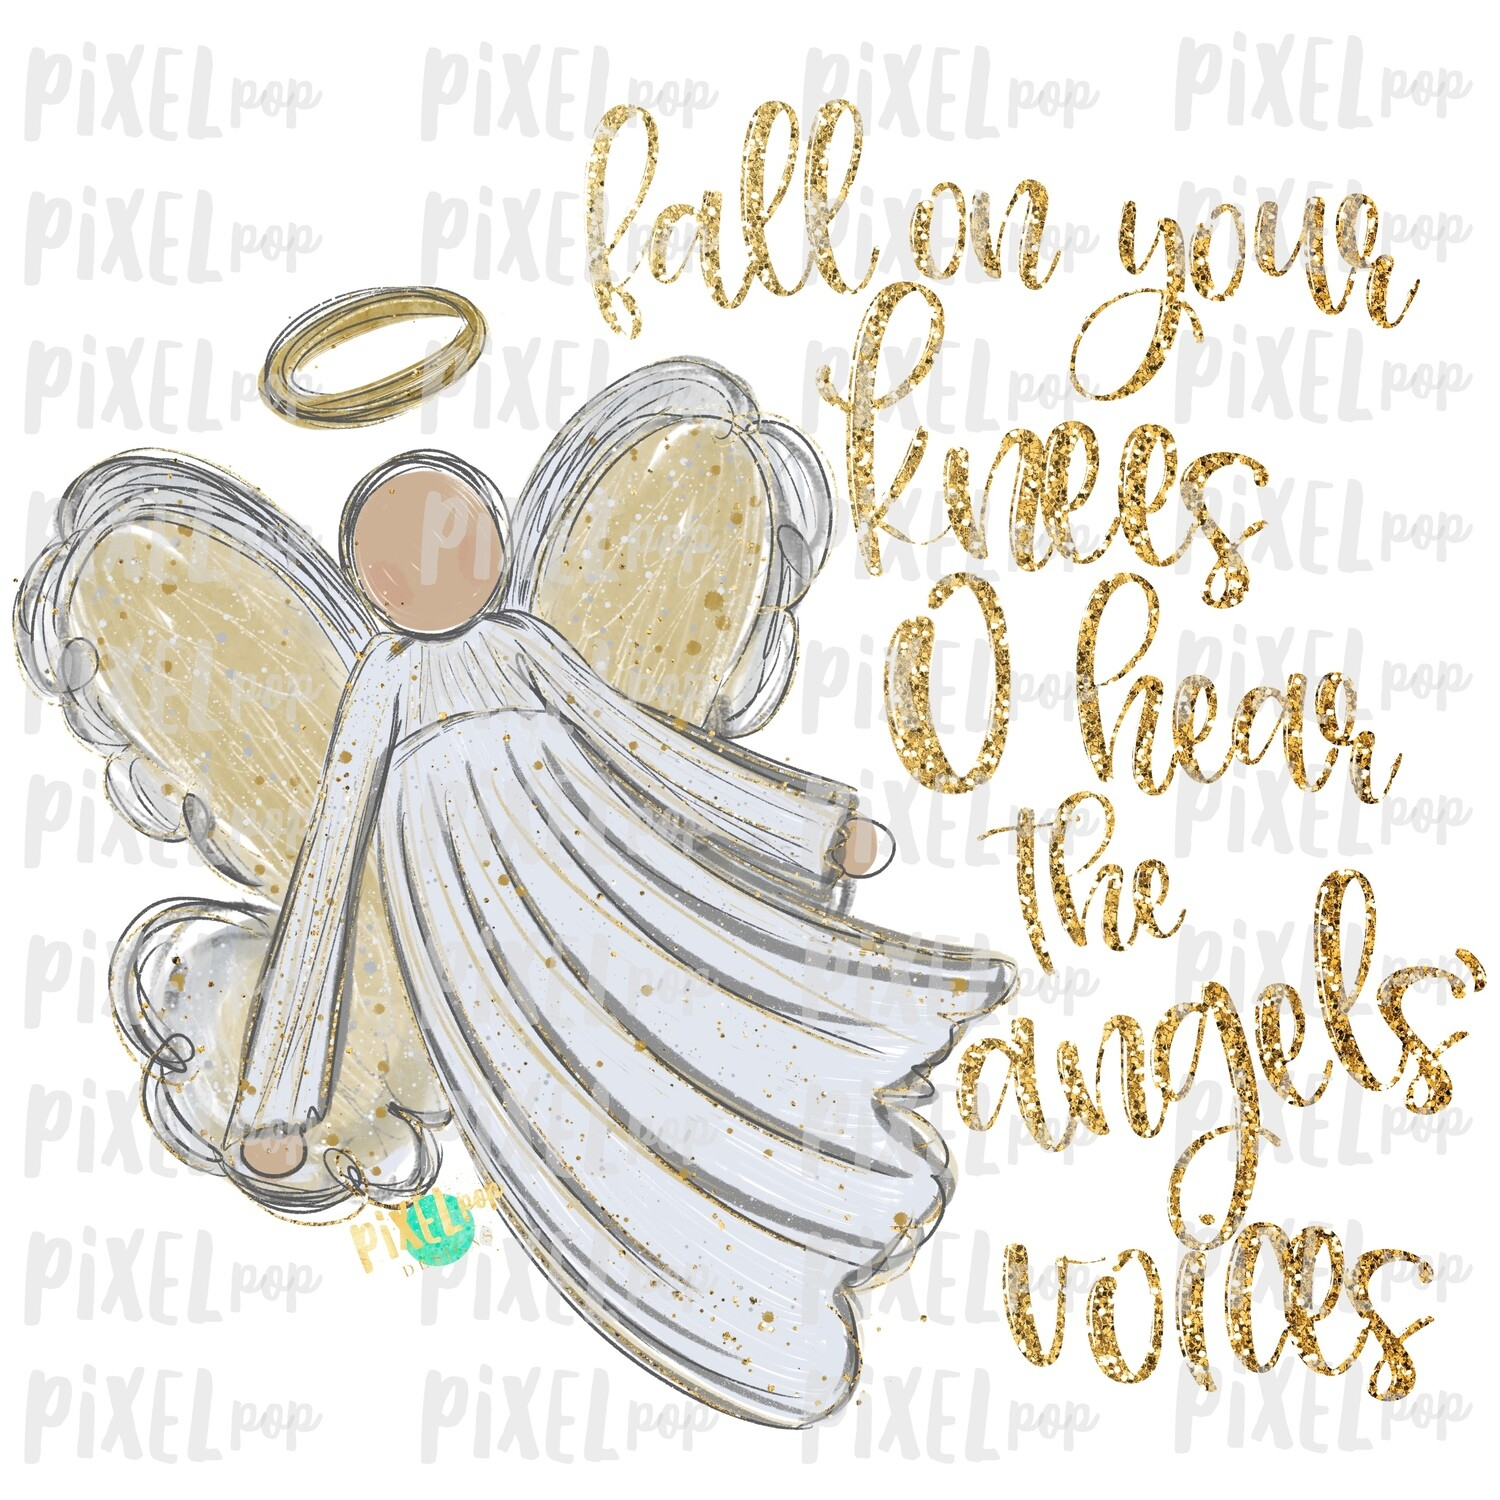 Light Skin Angel GLITTER Fall on Your Knees Art Sublimation PNG | Ornament Design | Hand Painted | Digital Download | Printable | Christmas